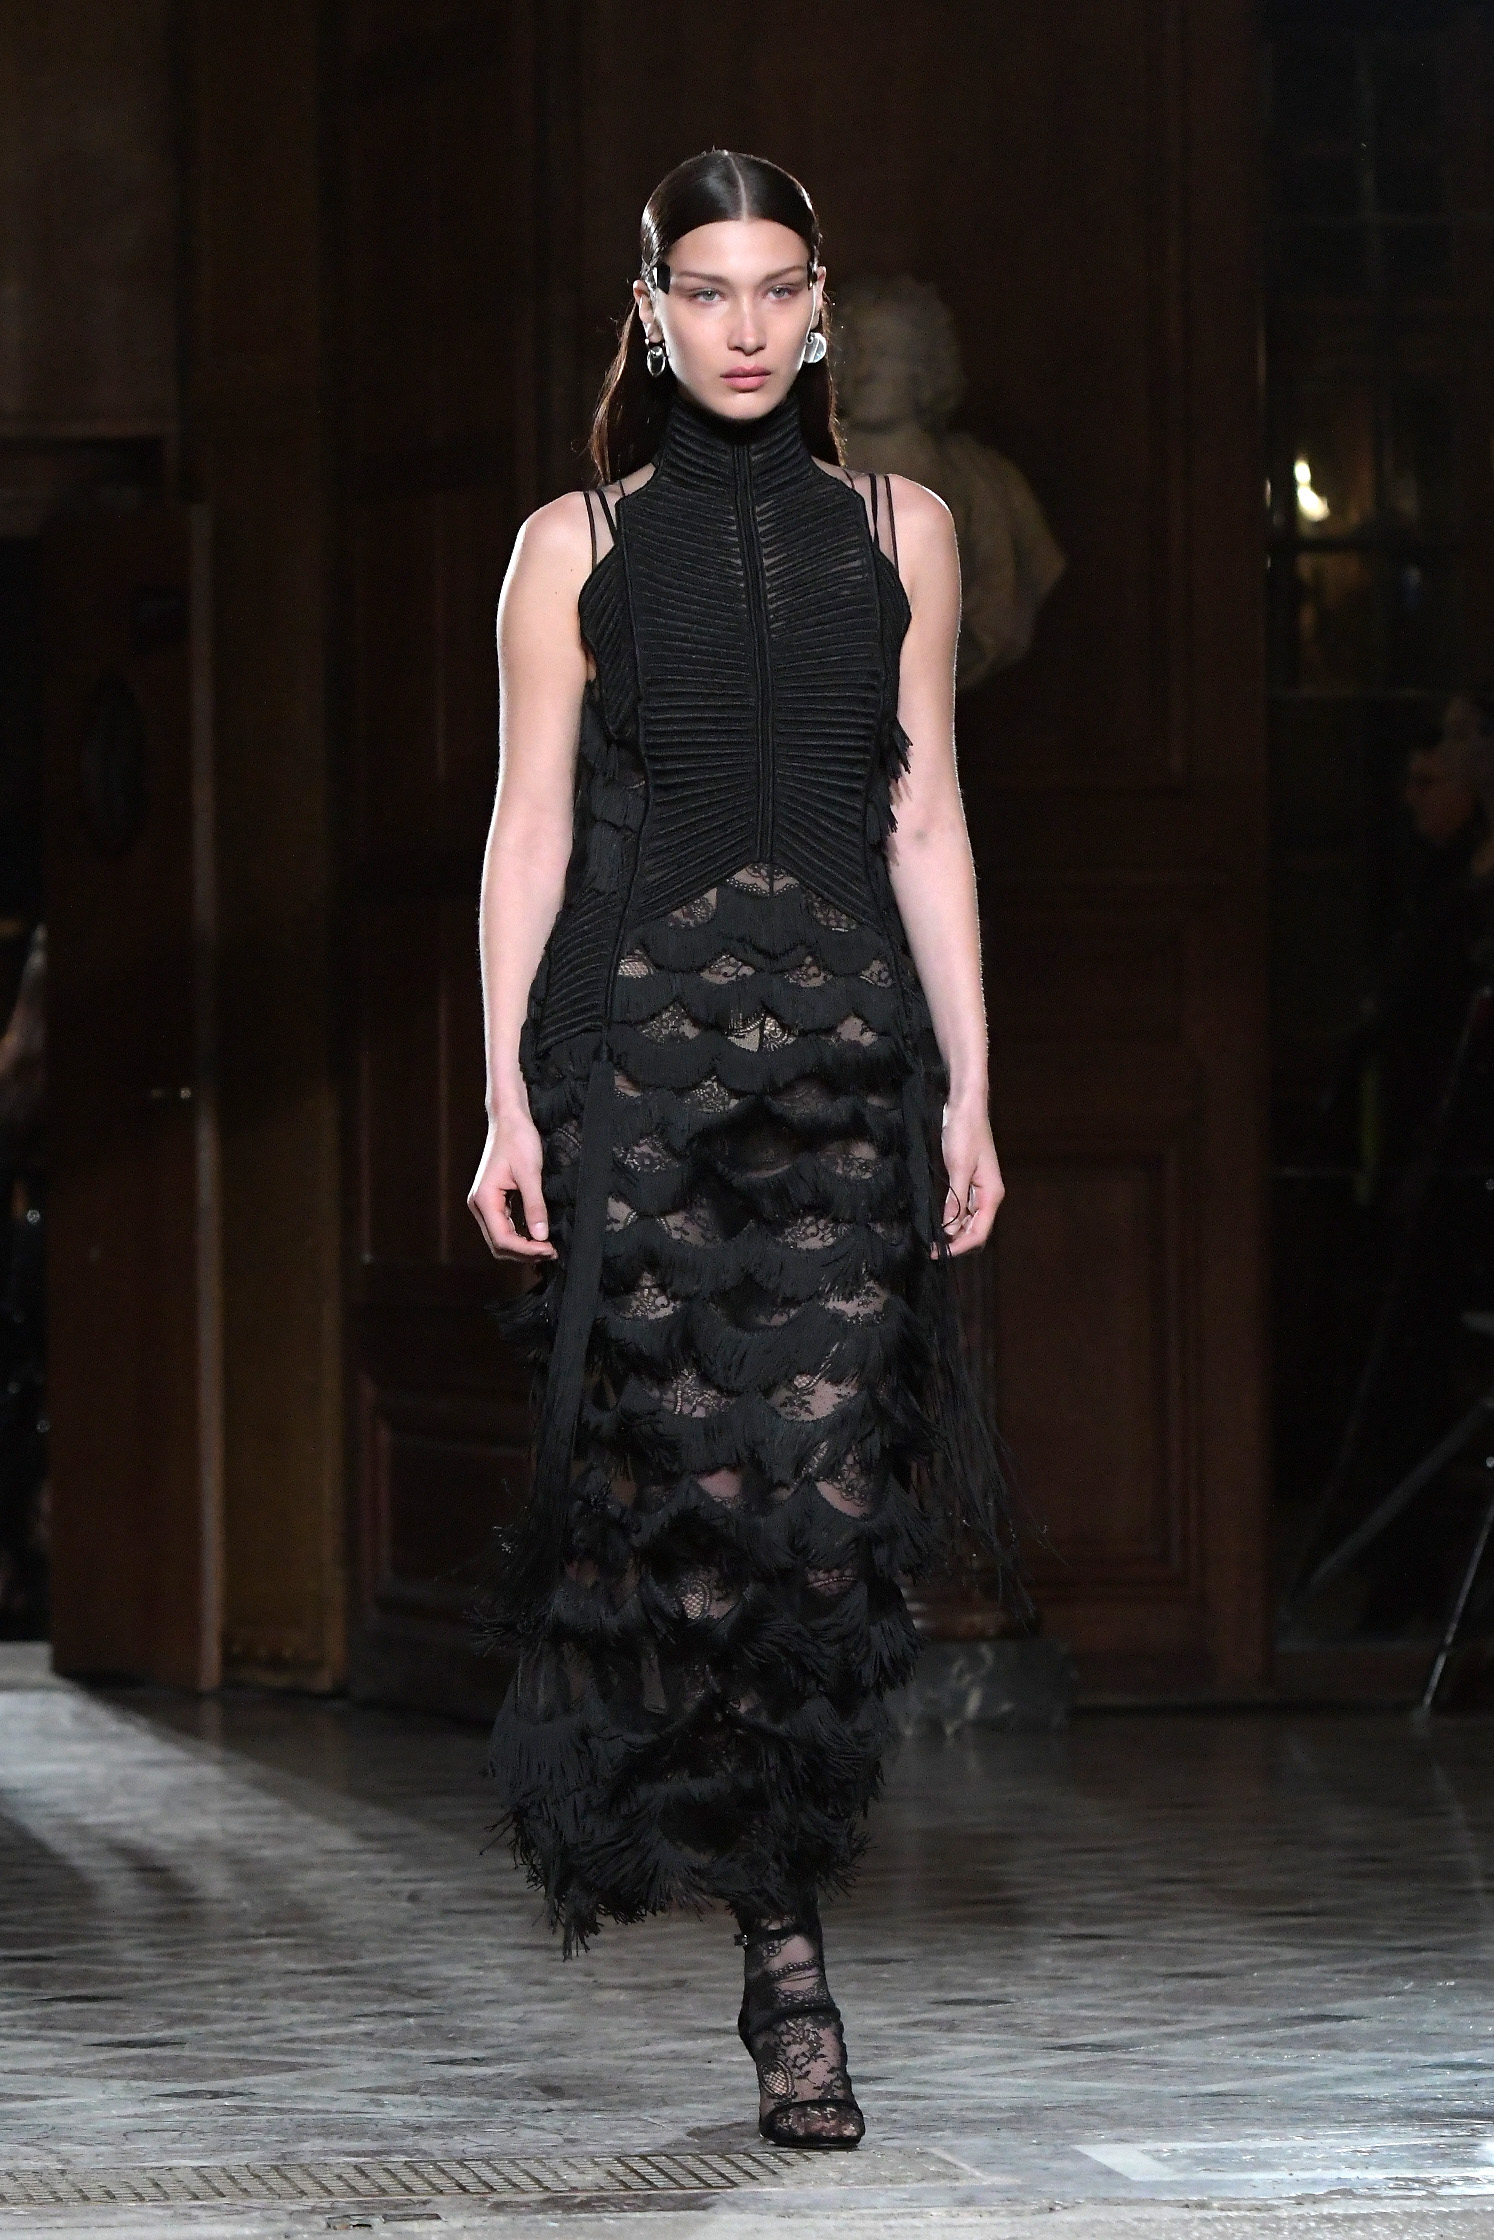 <p>The Givenchy show for Autumn/Winter 2017 Paris Fashion Week was star studded with both Bella Hadid and Kendall Jenner walking the runway.</p> <p>Social media stars and models of the moment Bella, 20, (pictured here) and Kendall, 21, brought the Gen Y element while fashion veterans, and Givenchy regulars, including Joan Smalls, 28, and Liya Kebede, 38, added gravitas and grace. A number of regular runway models also featured.</p> <p>The combination of all of the above gave the show an eclectic, exciting buzz and the fashion more than lived up to it. The women's pieces were delicate and eclectic in rich, deep colours and patterns too. The men were considerably more bold, bright and modern and yet somehow the two were perfectly aligned - see the looks here and judge for yourself.</p>